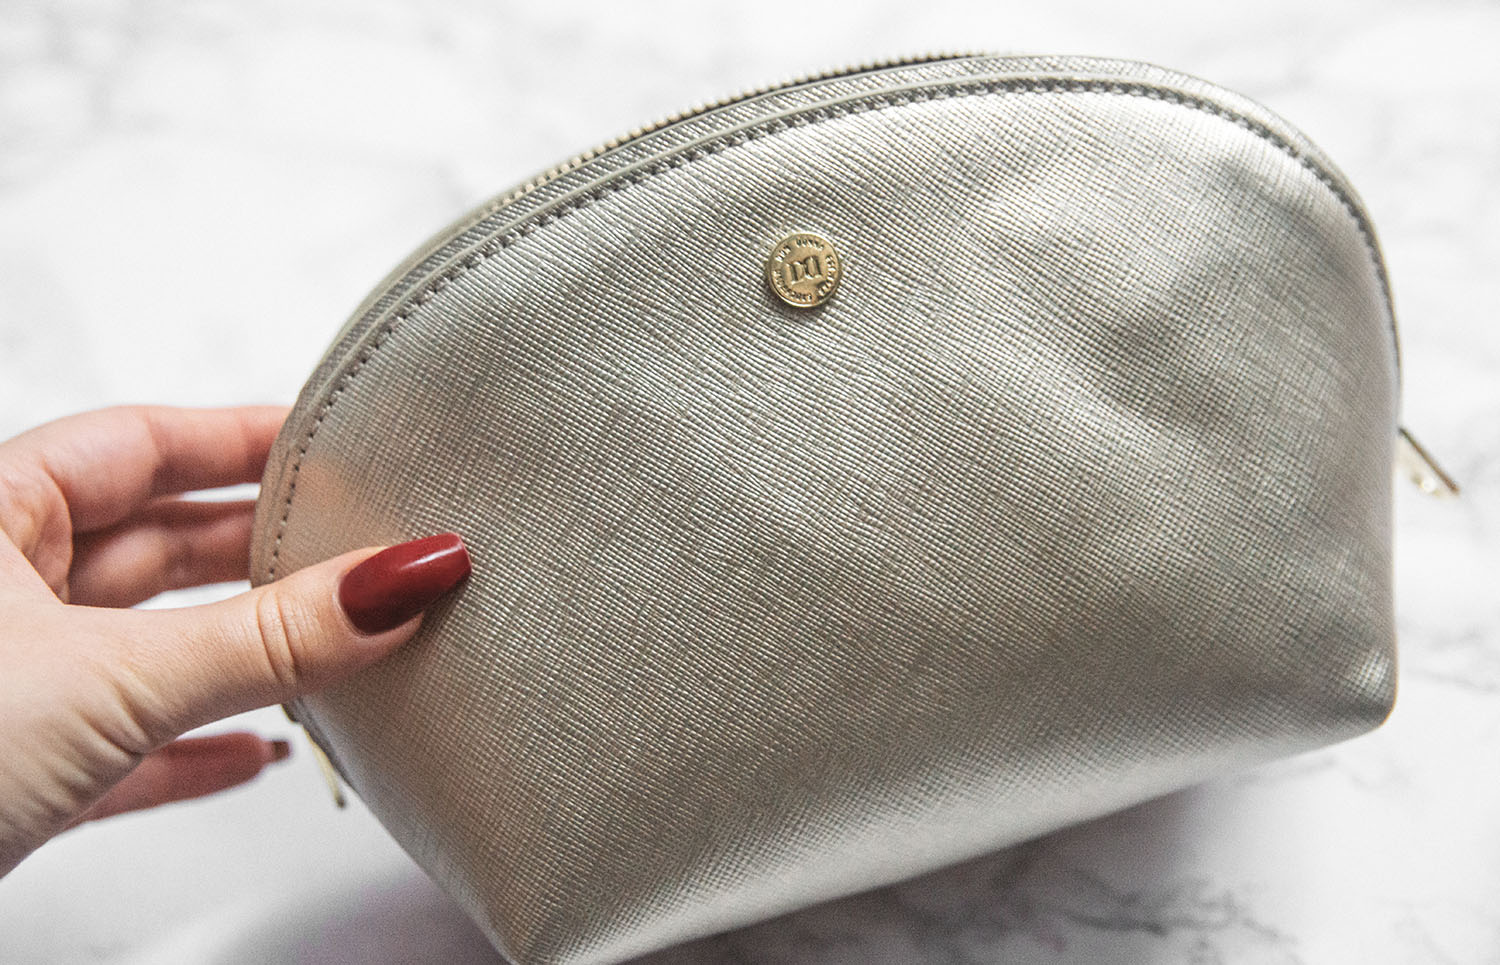 Don Donna Tove Makeup bag